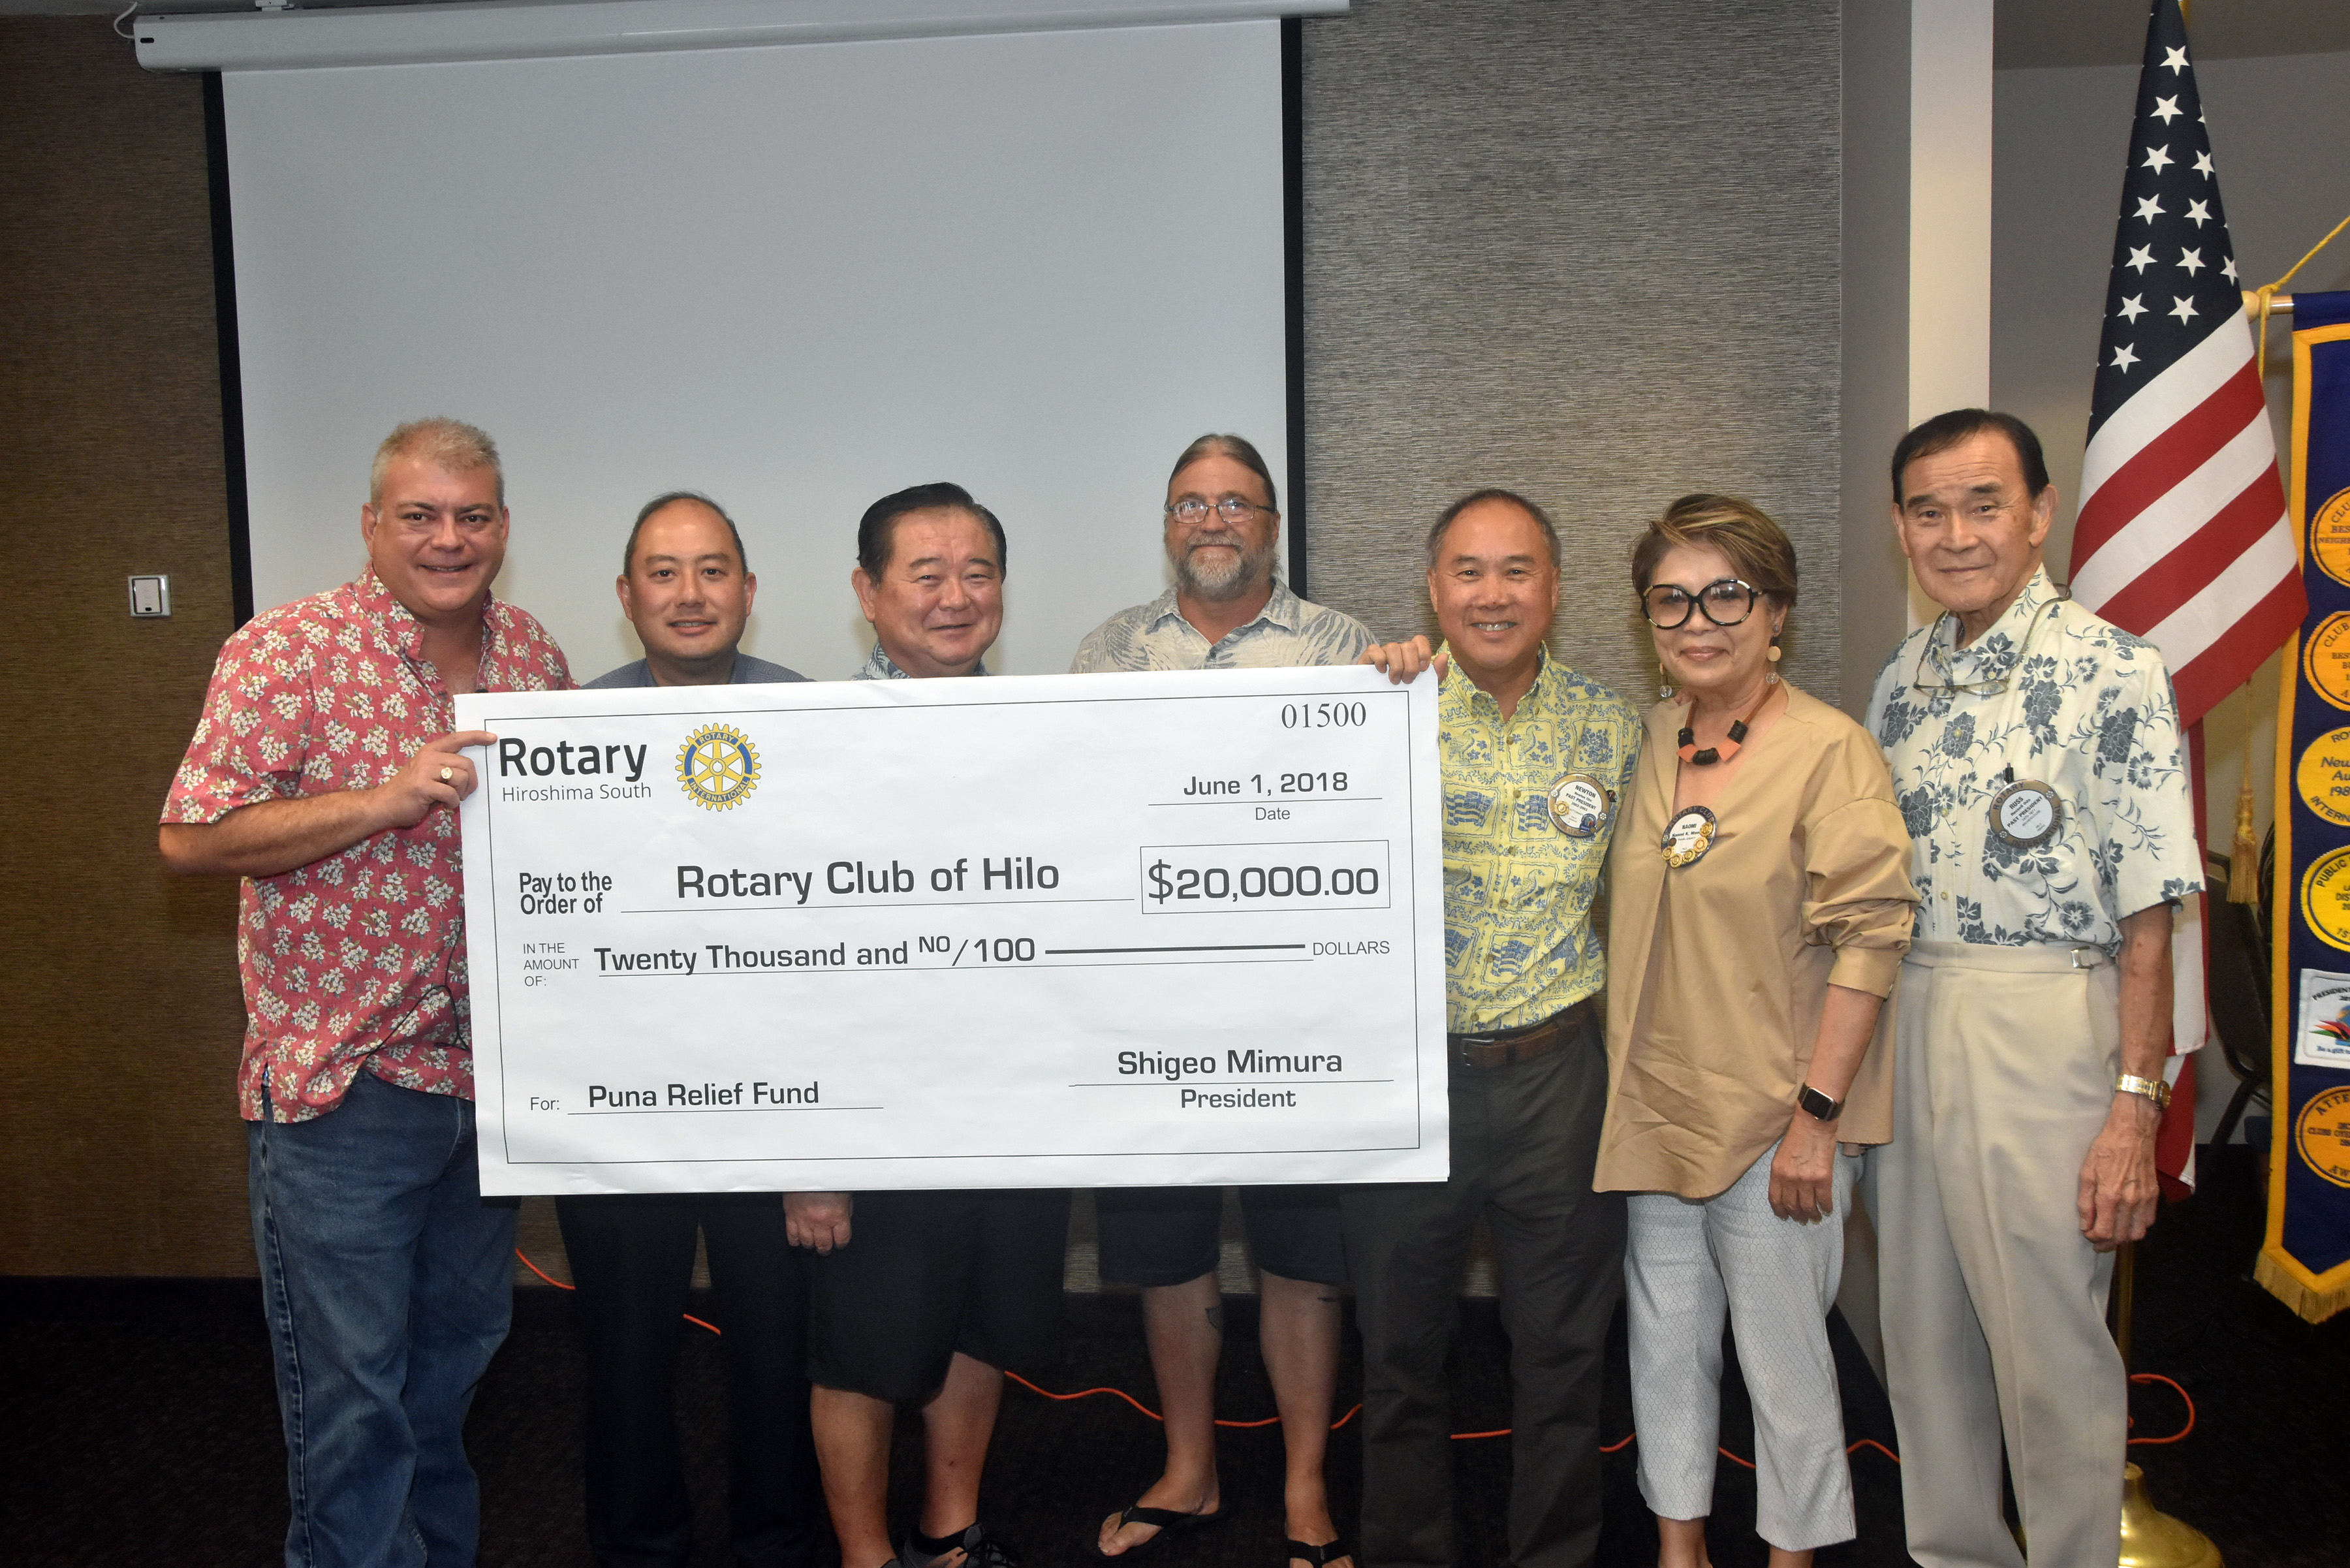 Rotary Club of Hilo president Steve Handy (far left) presents the $20,000 check from the Rotary Club of Hiroshima South in Japan to Pahoa Sunset Rotary Club president Ron Cutler (fourth from left). Handy was joined by Rotary Club of Hilo members (from left) Mitchell Dodo, Ed Hara, Newton Chu, Naomi Menor and Russell Oda, all of whom, except for Menor, are Rotary Club of Hilo past presidents. (Photo courtesy Ed Hara)